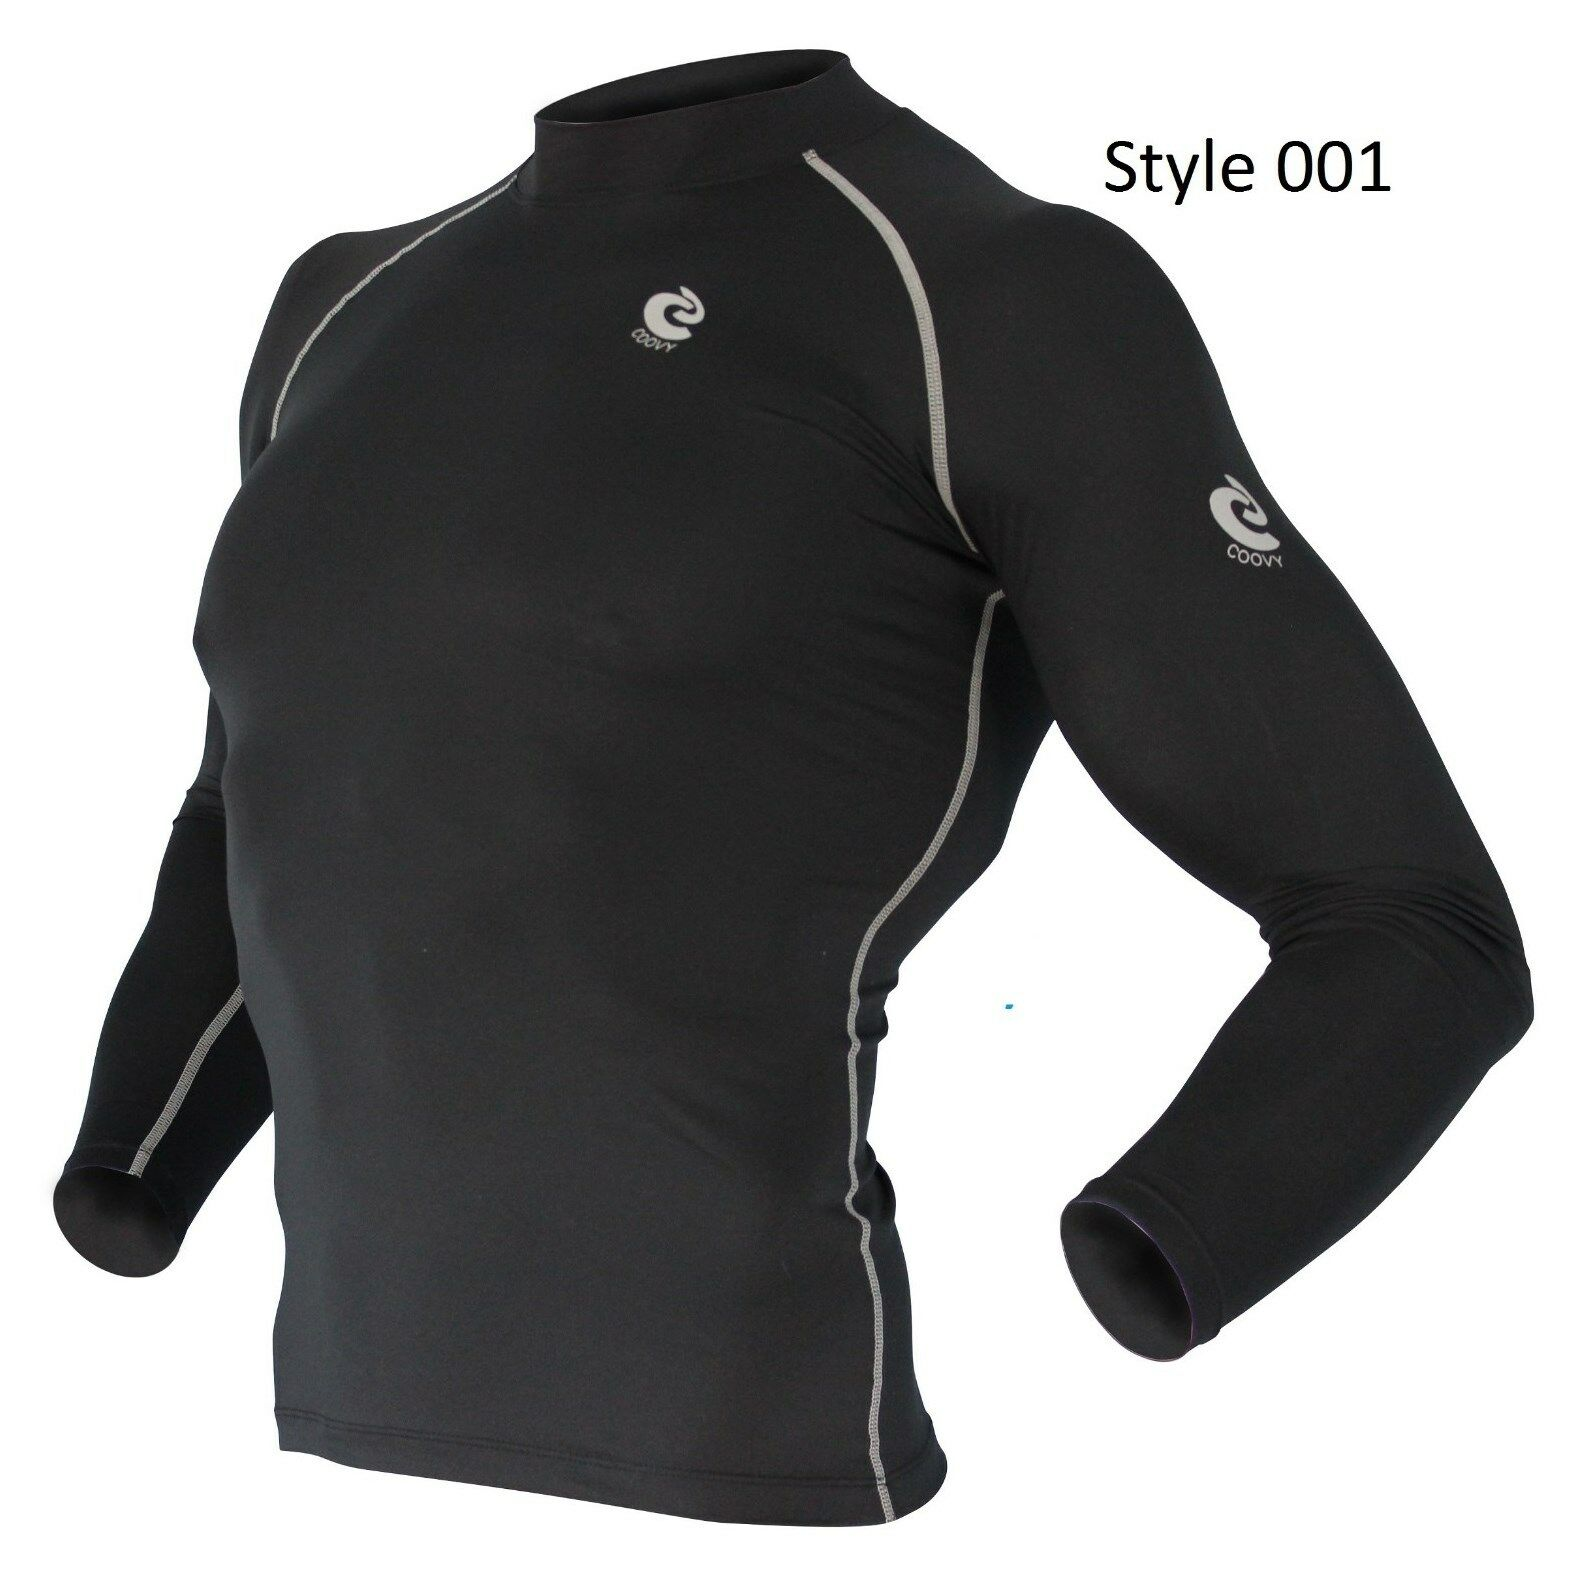 001 Black Long Sleeve Shirt